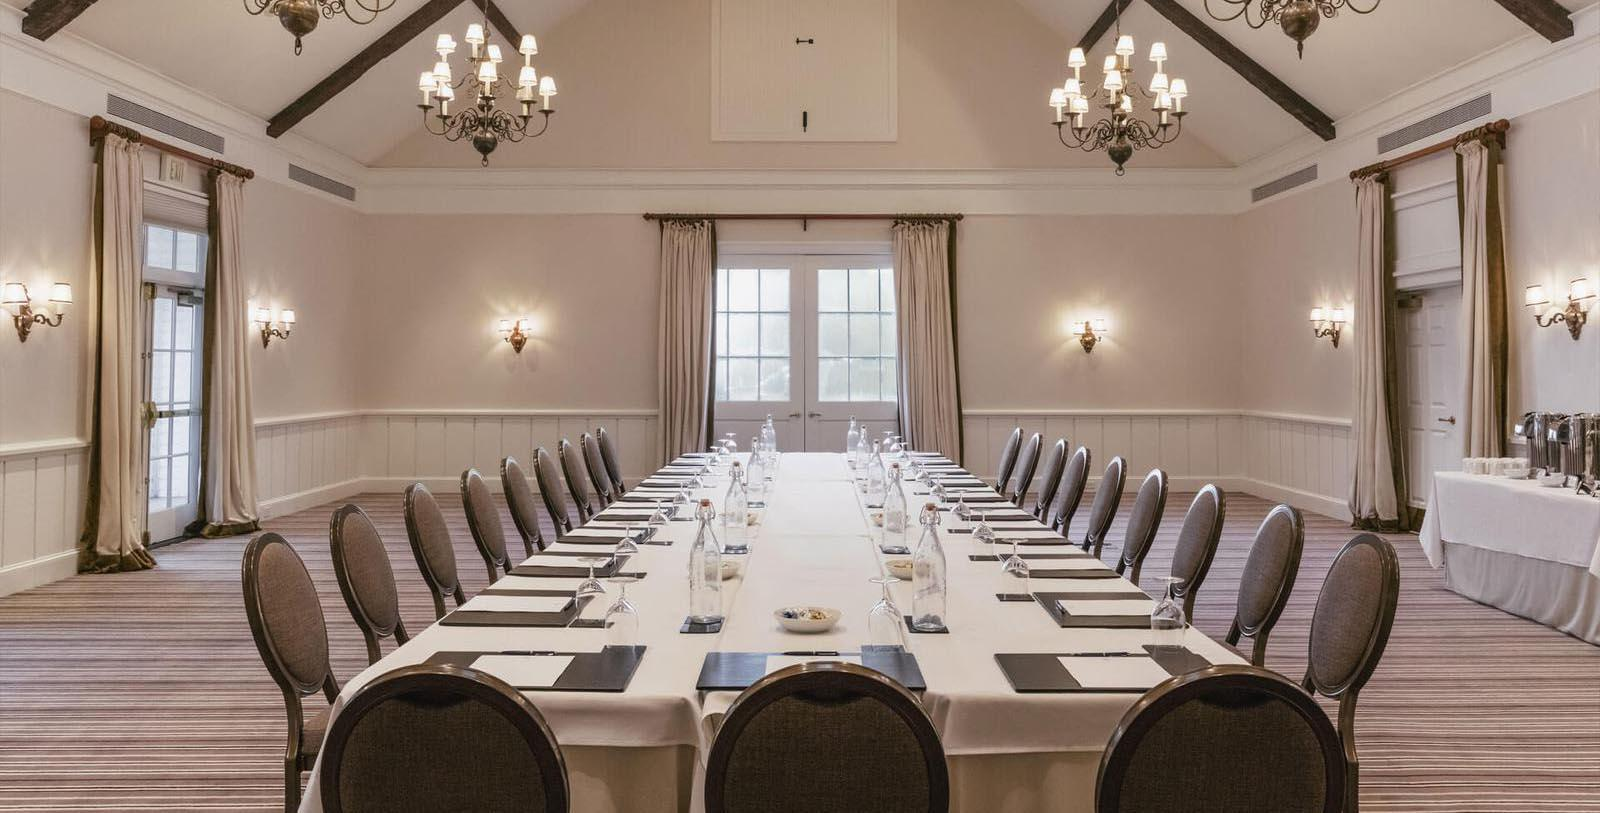 Image of Meeting Room, Inn at Perry Cabin in St. Michaels, Maryland, 1816, Member of Historic Hotels of America, Experience